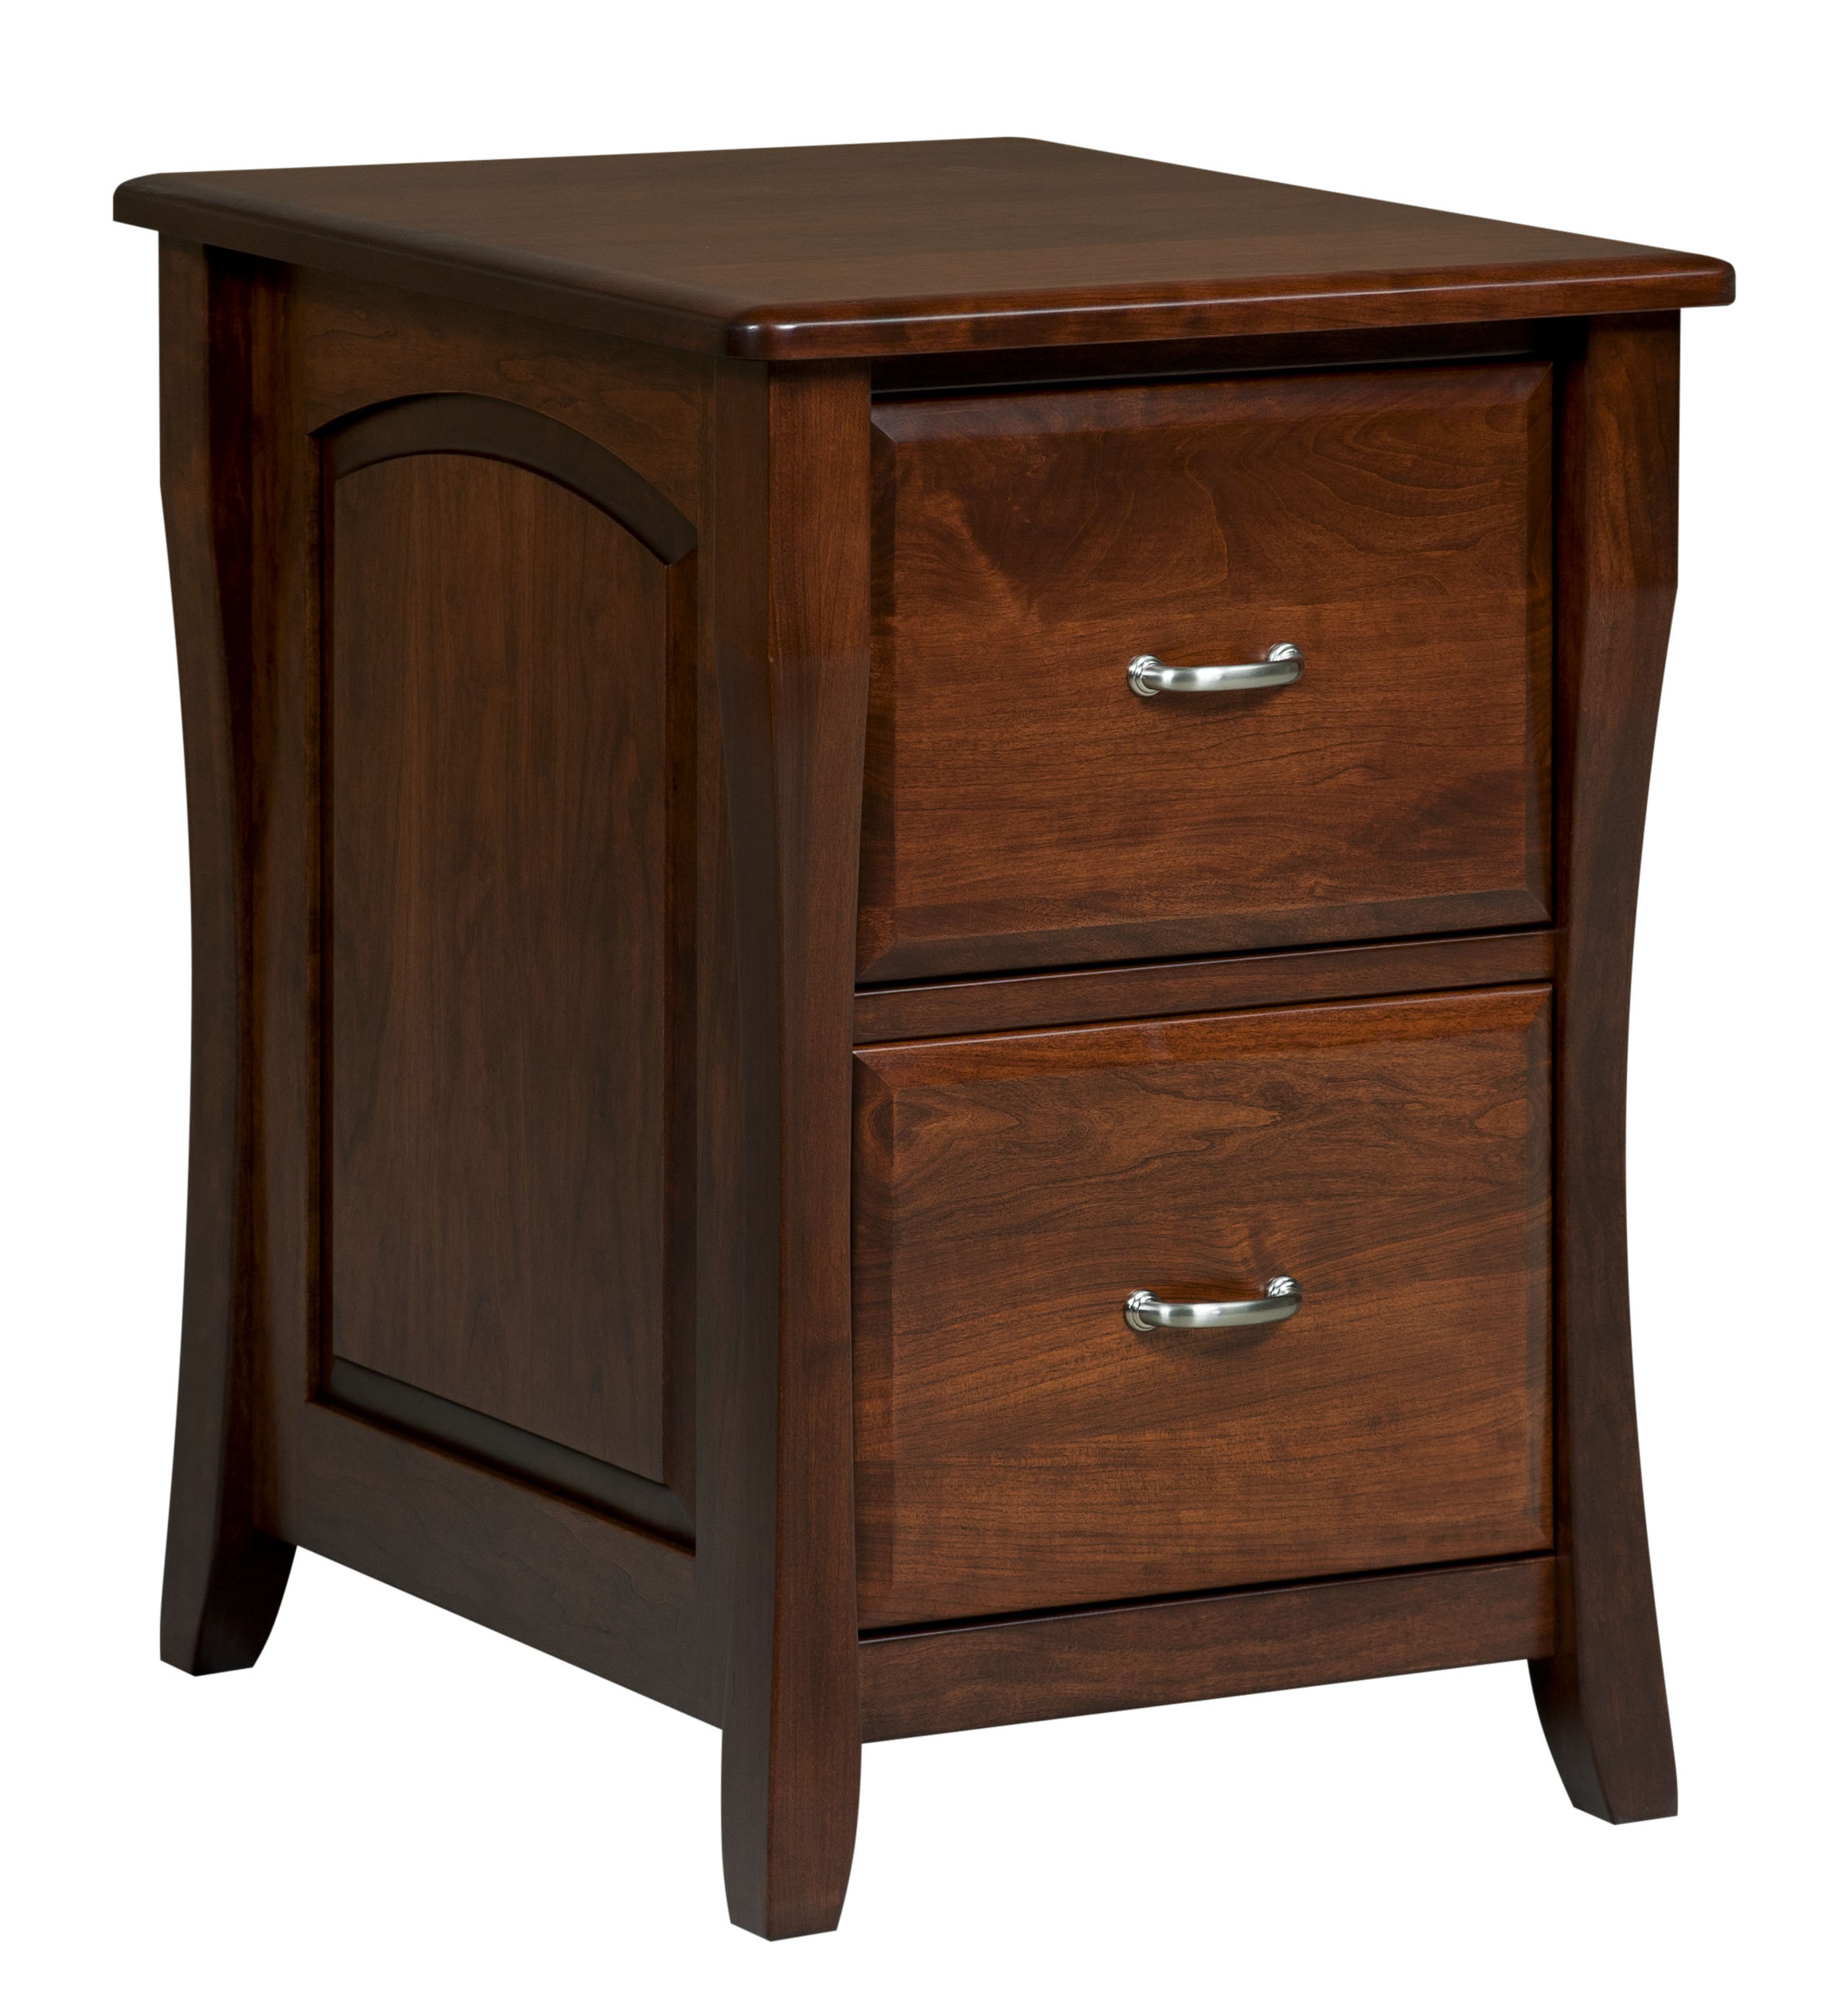 file cabinet furniture filing cabinets amish furniture gallery in lockport il 15327